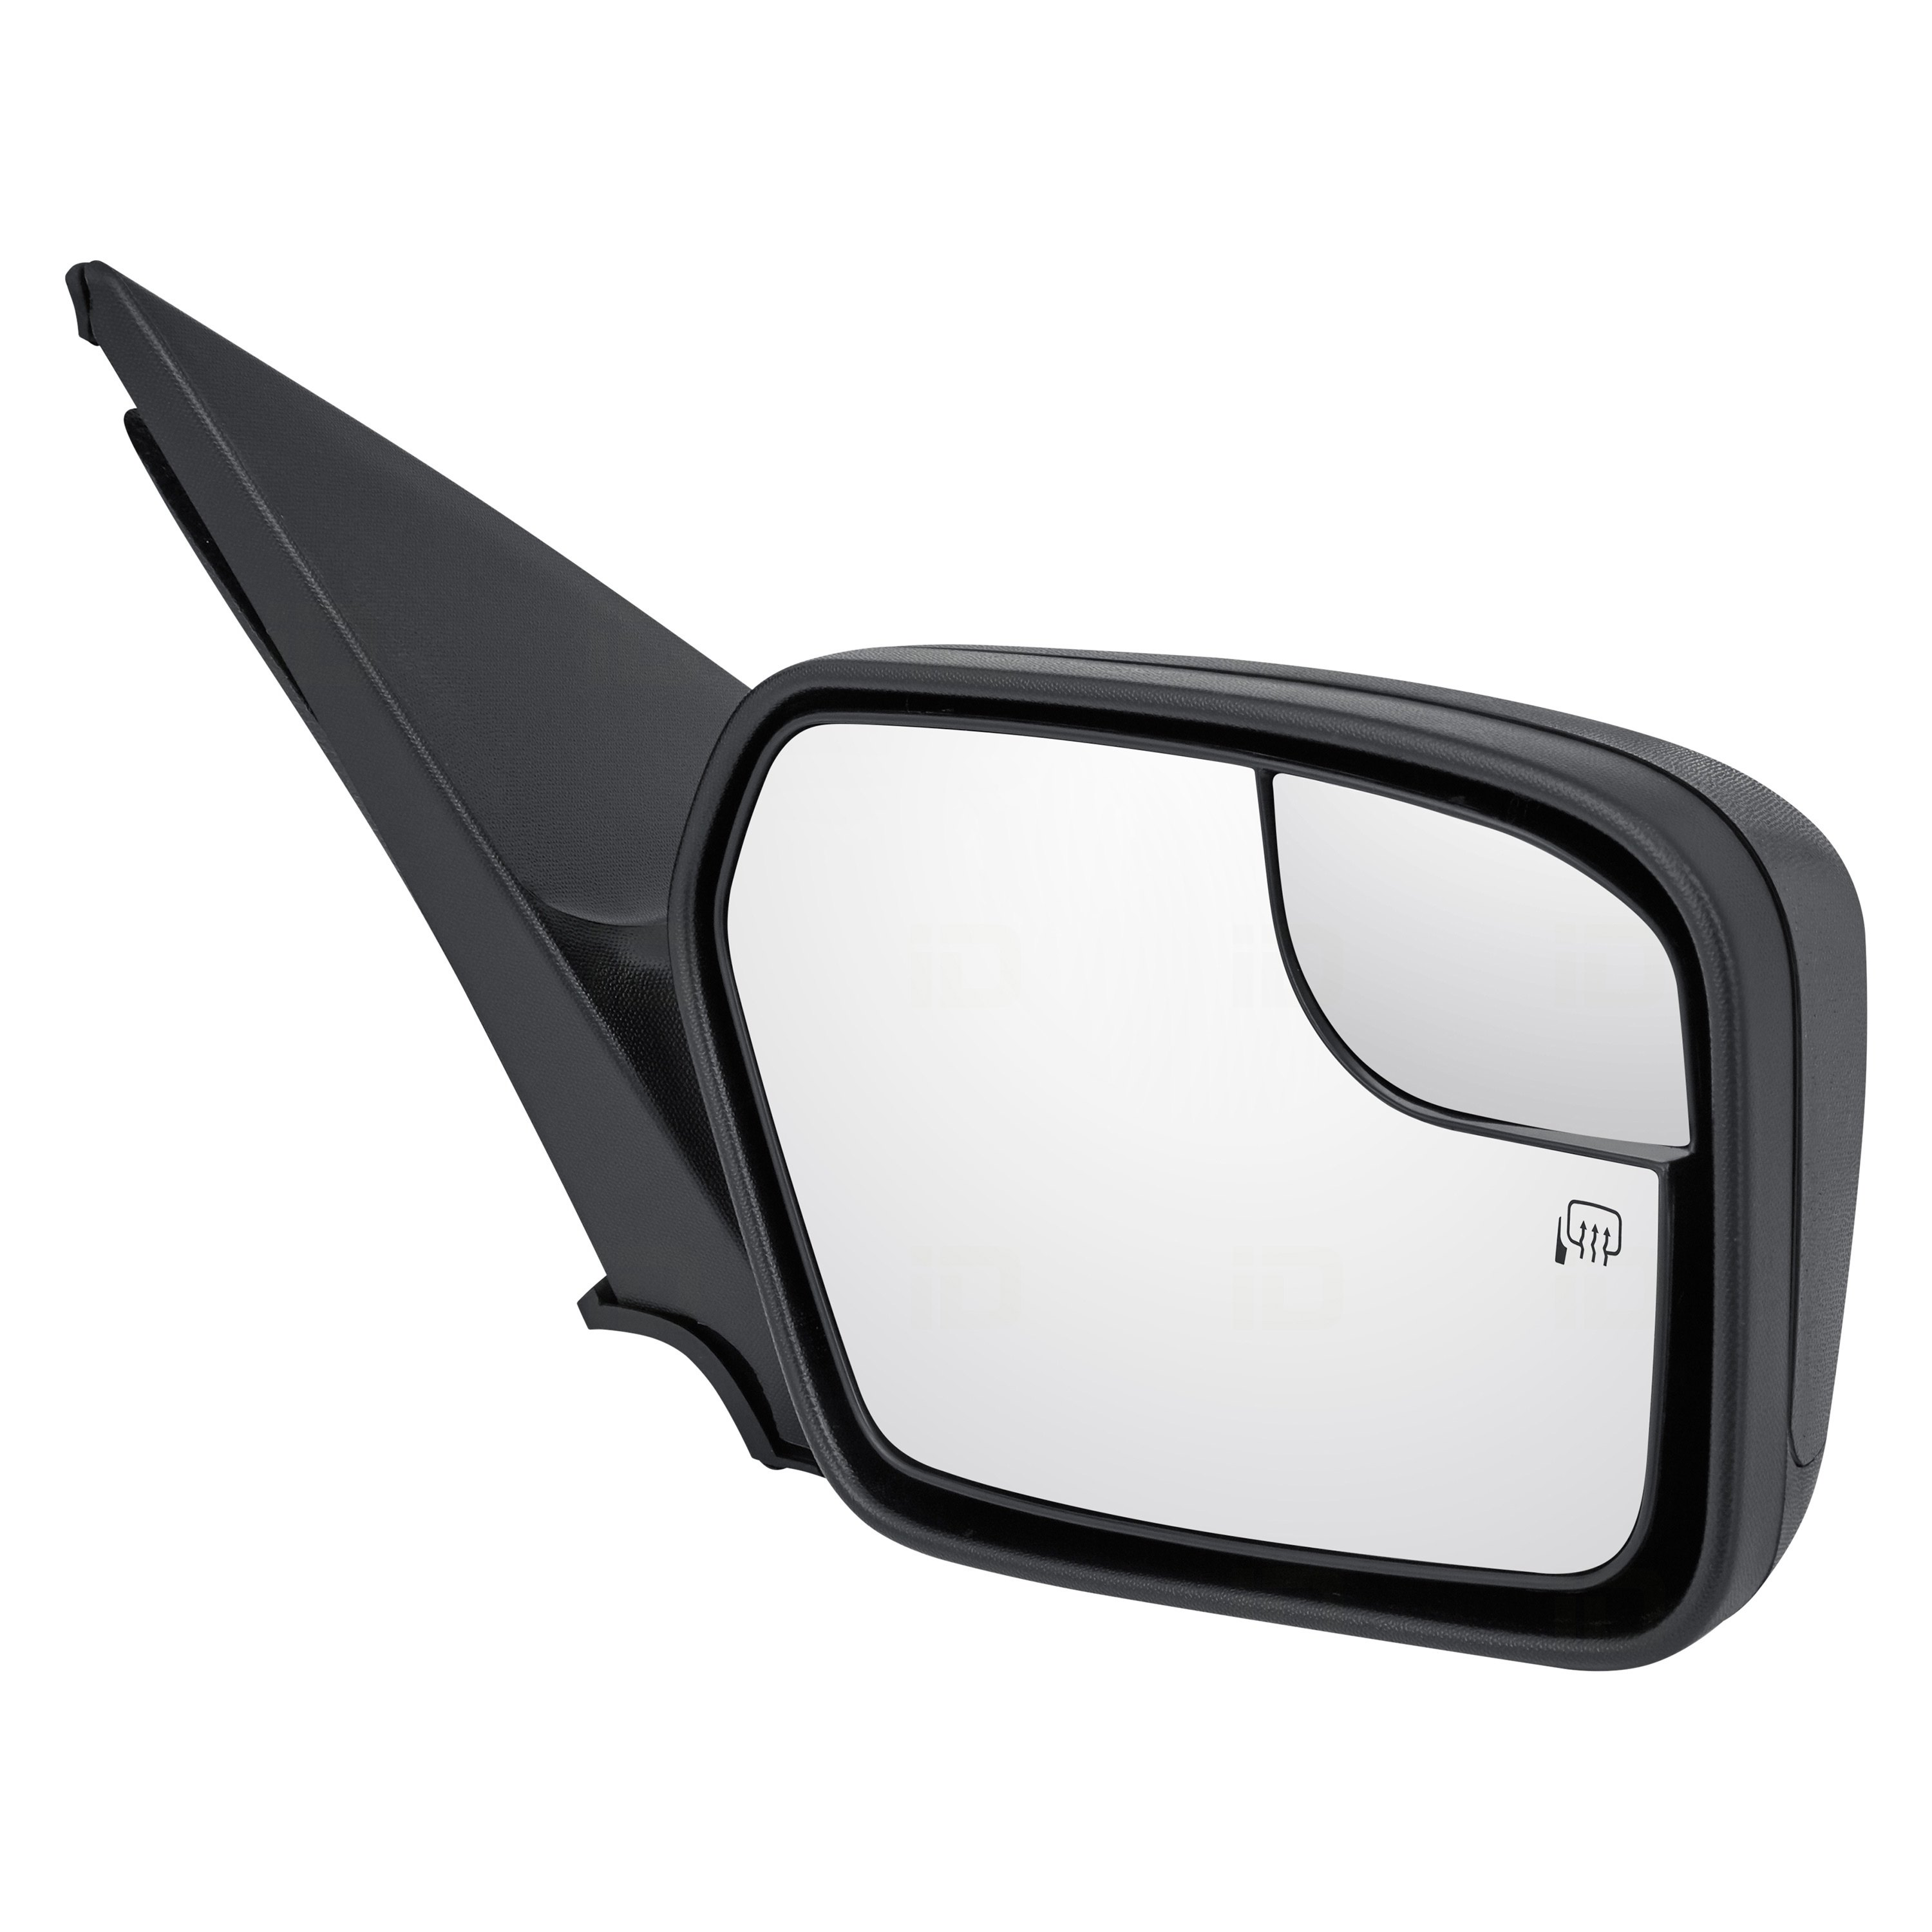 New FO1321424 Passenger Side Mirror for Ford Fusion 2011-2012